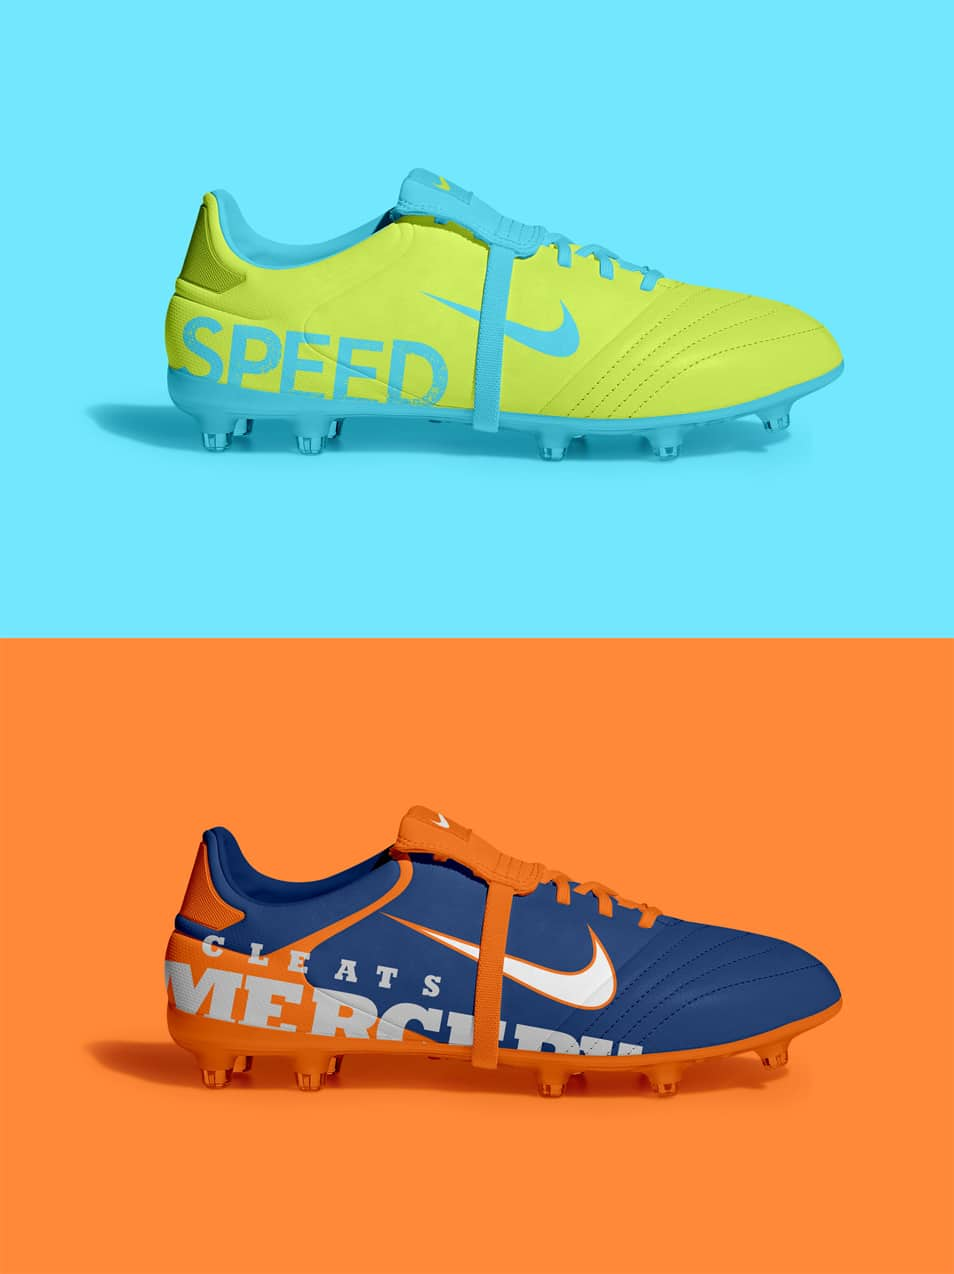 Free Soccer Cleat Shoes Mockup PSD